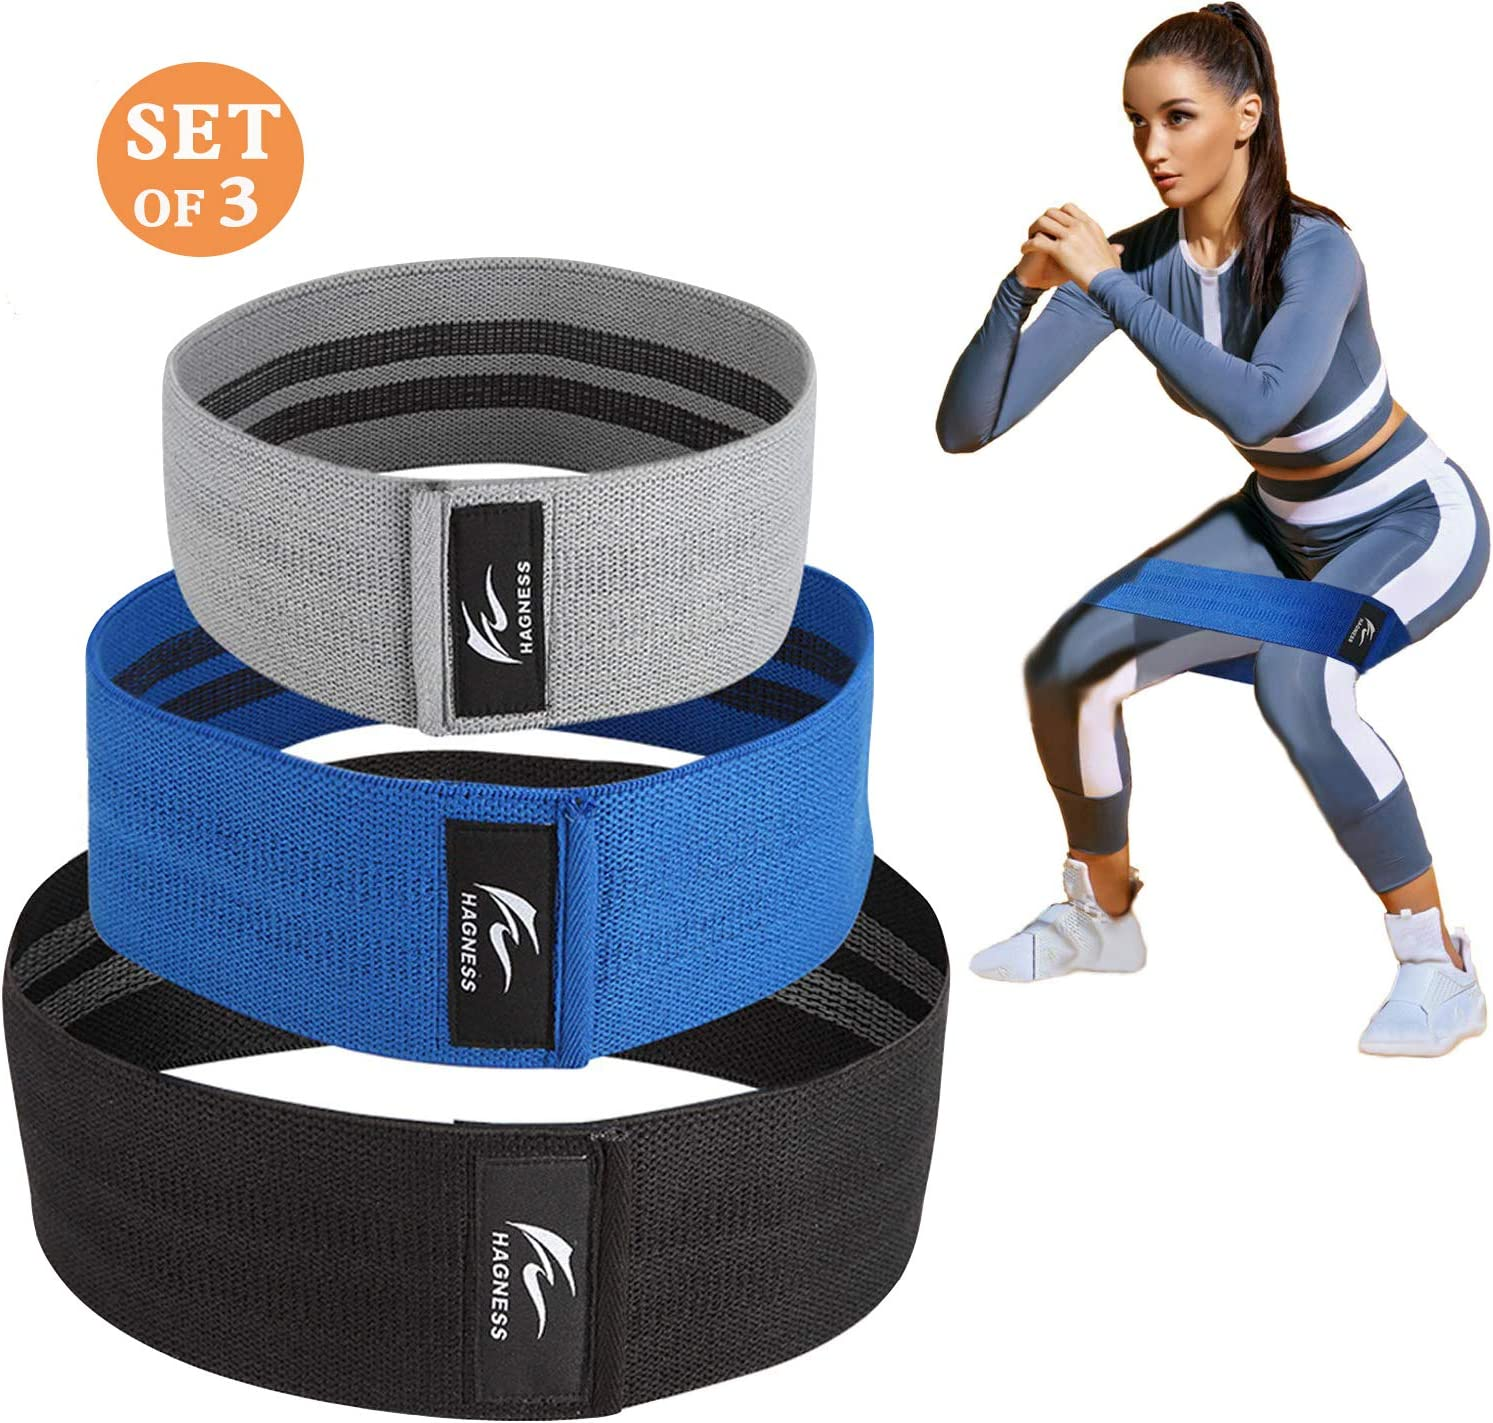 HAGNESS Booty Bands for Legs and Butt Hip Bands Resistance Bands Workout Bands Fitness Bands Fabric Soft and Non-Slip Design Glute Stretch Resistance ...